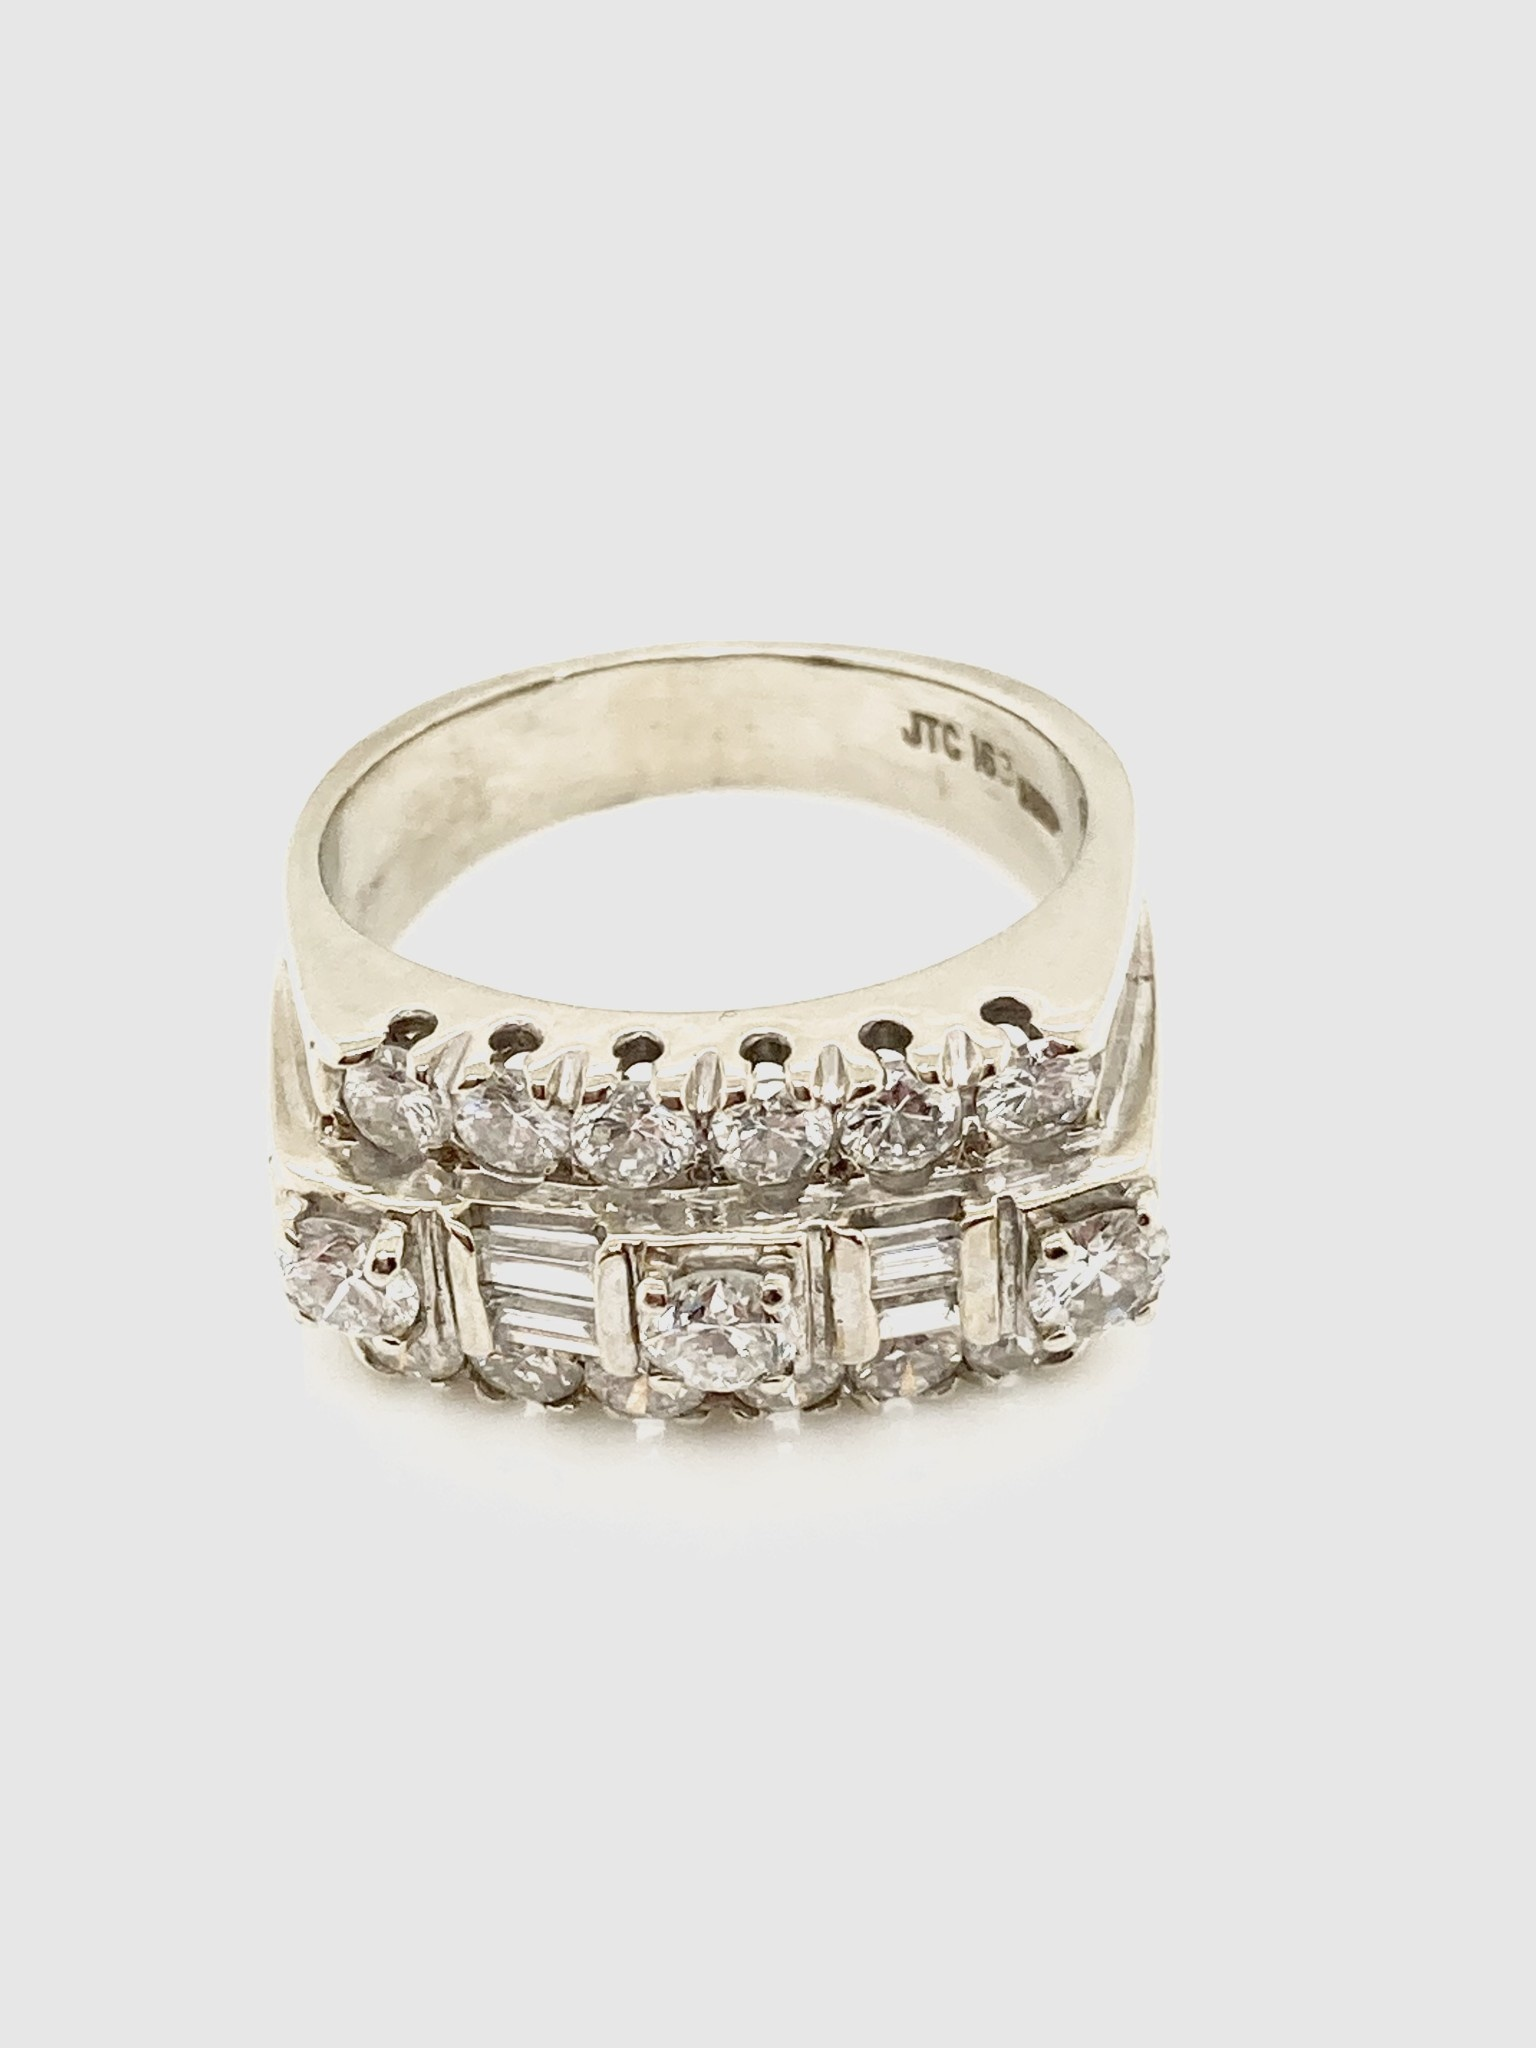 14k White Gold 3 Row Round and Baguette Diamond Ring